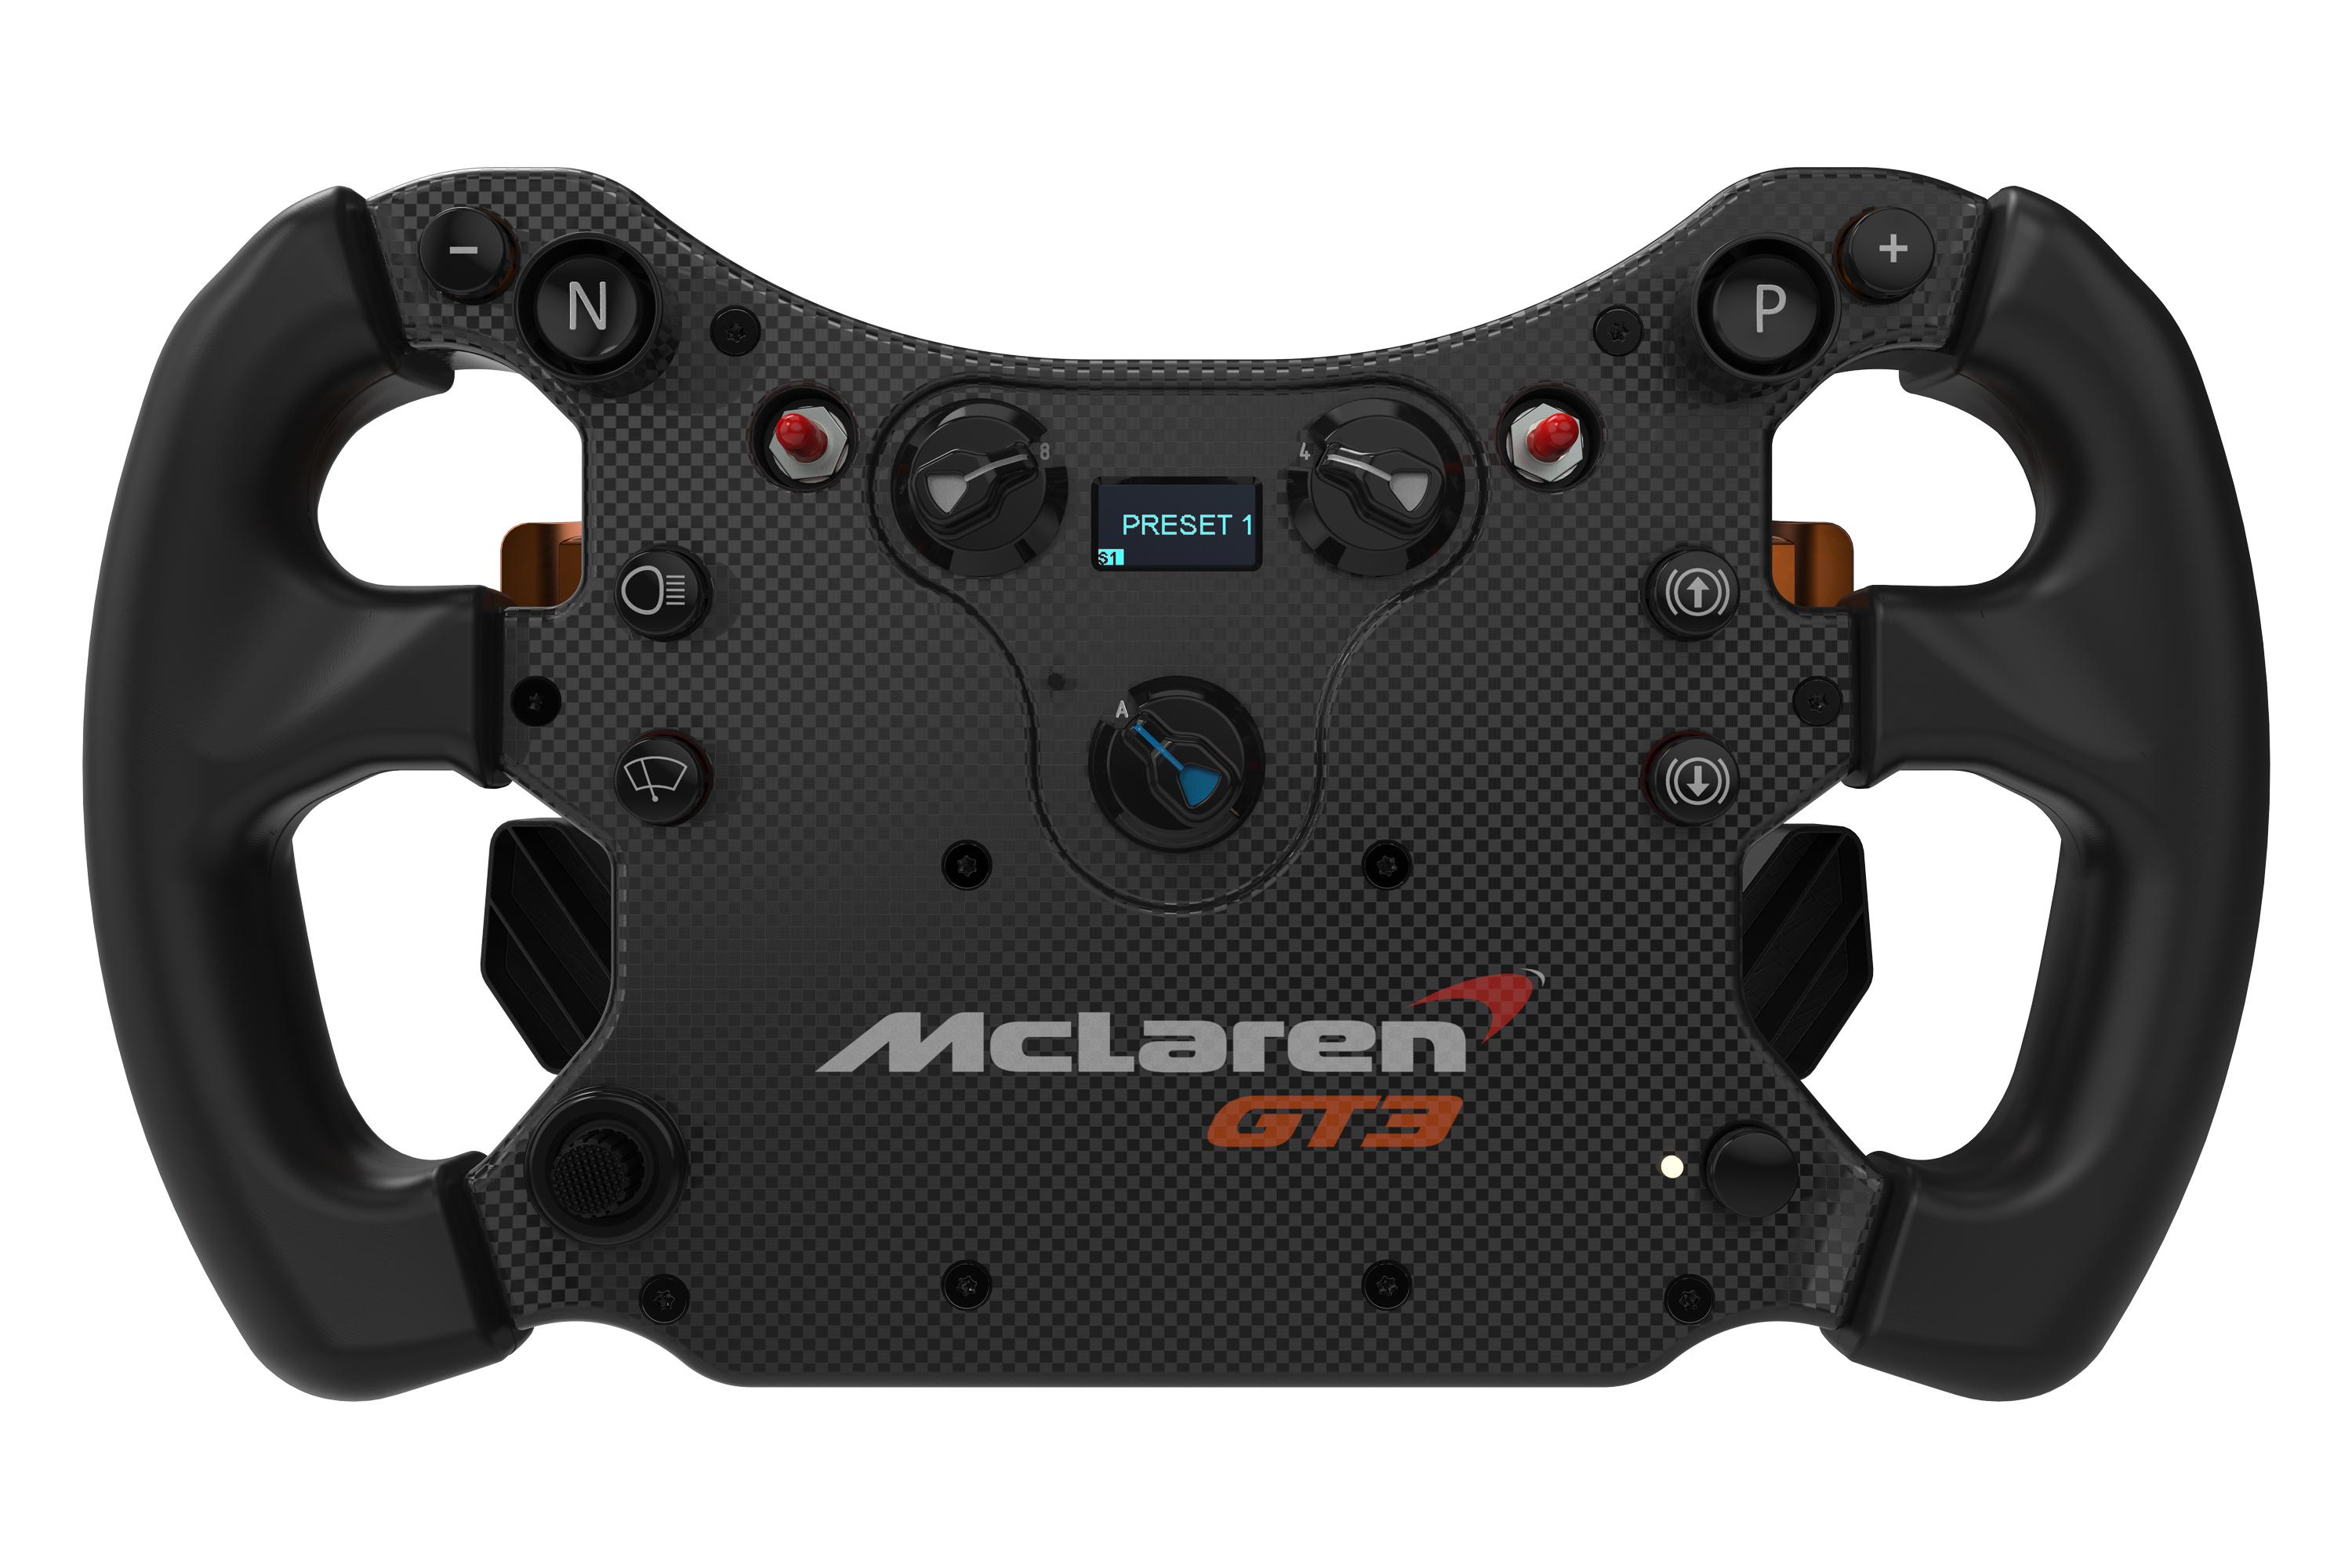 Fanatec announces McLaren GT3 CSL Elite wheel rim